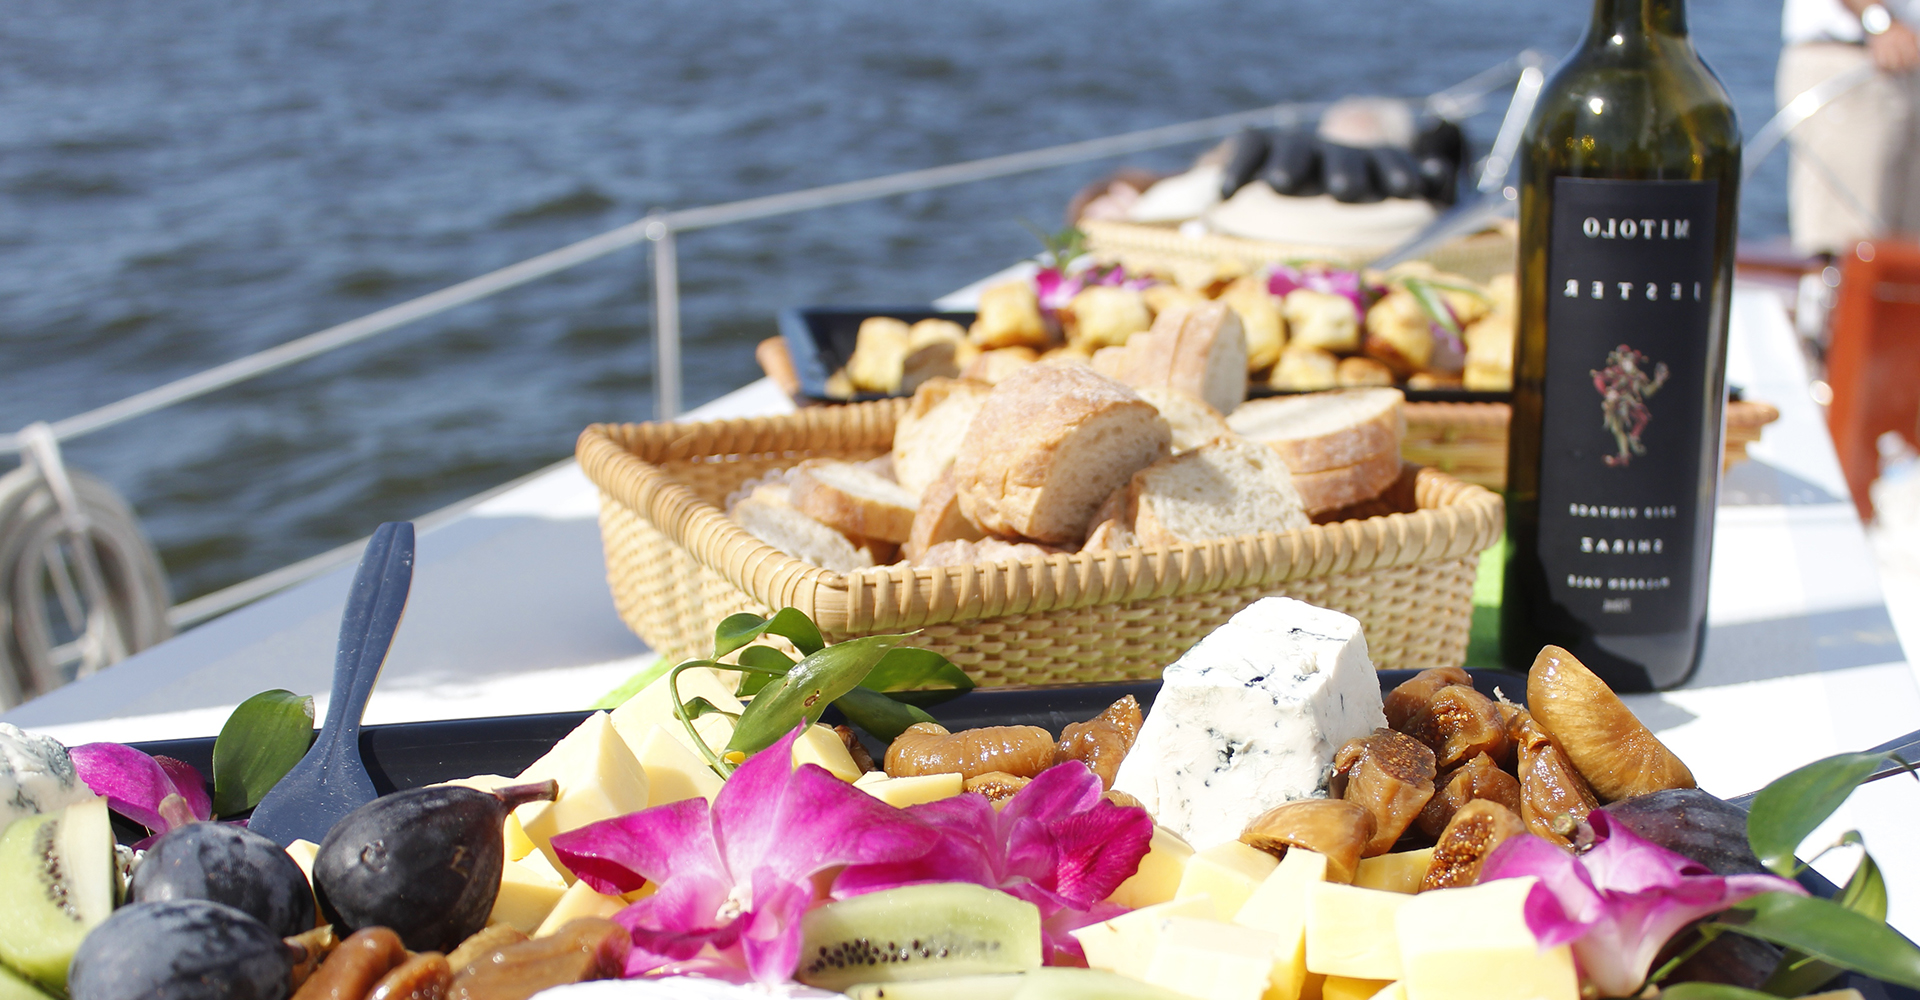 Cheese bread and wine displayed with flowers on the sailboat